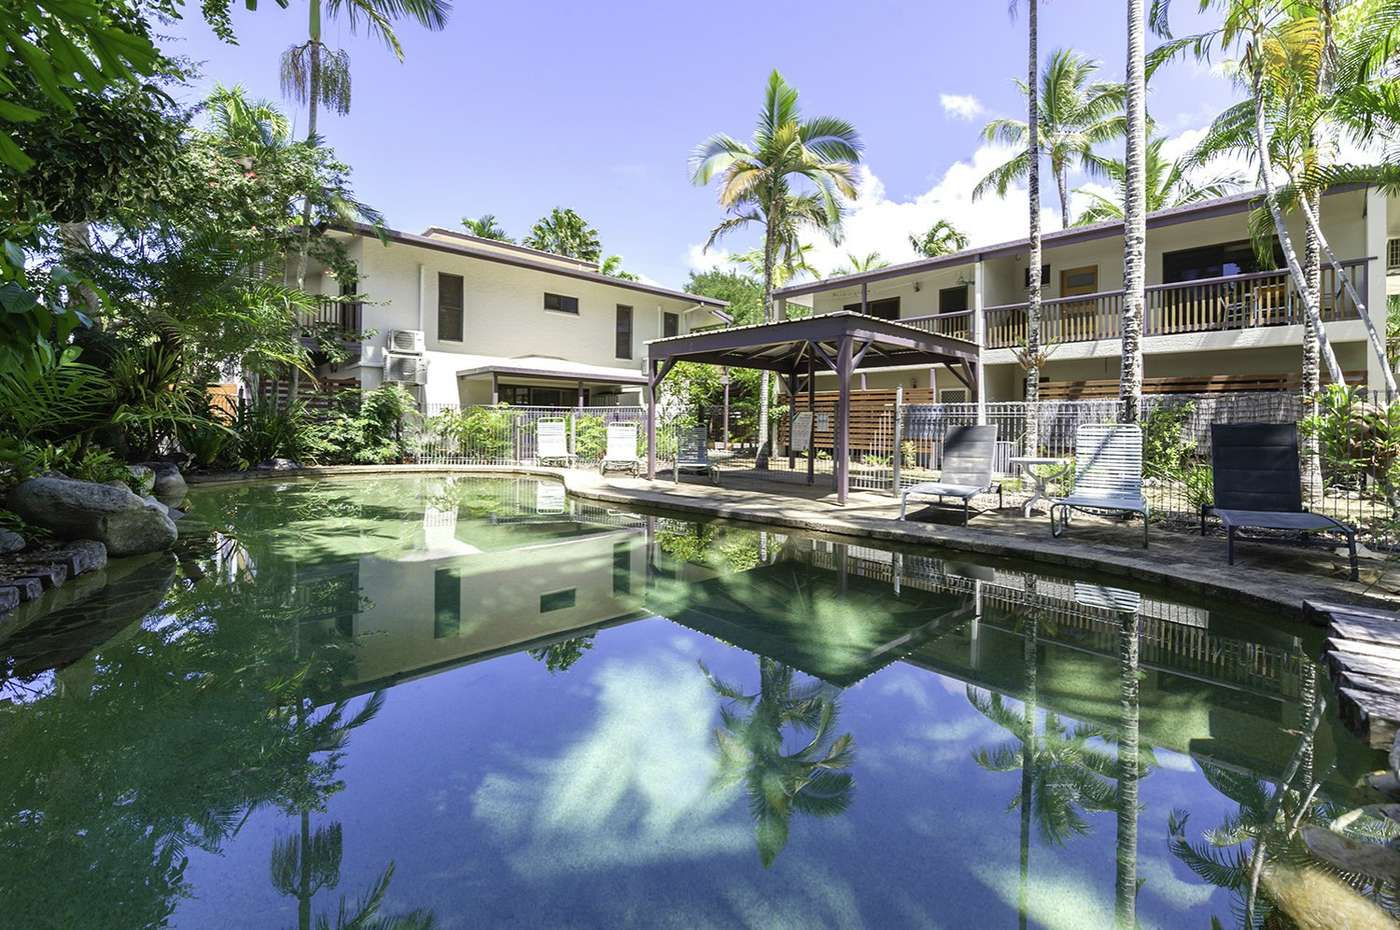 Main view of Homely apartment listing, 4 Tamarind/5 Tropic Court, Port Douglas, QLD 4877